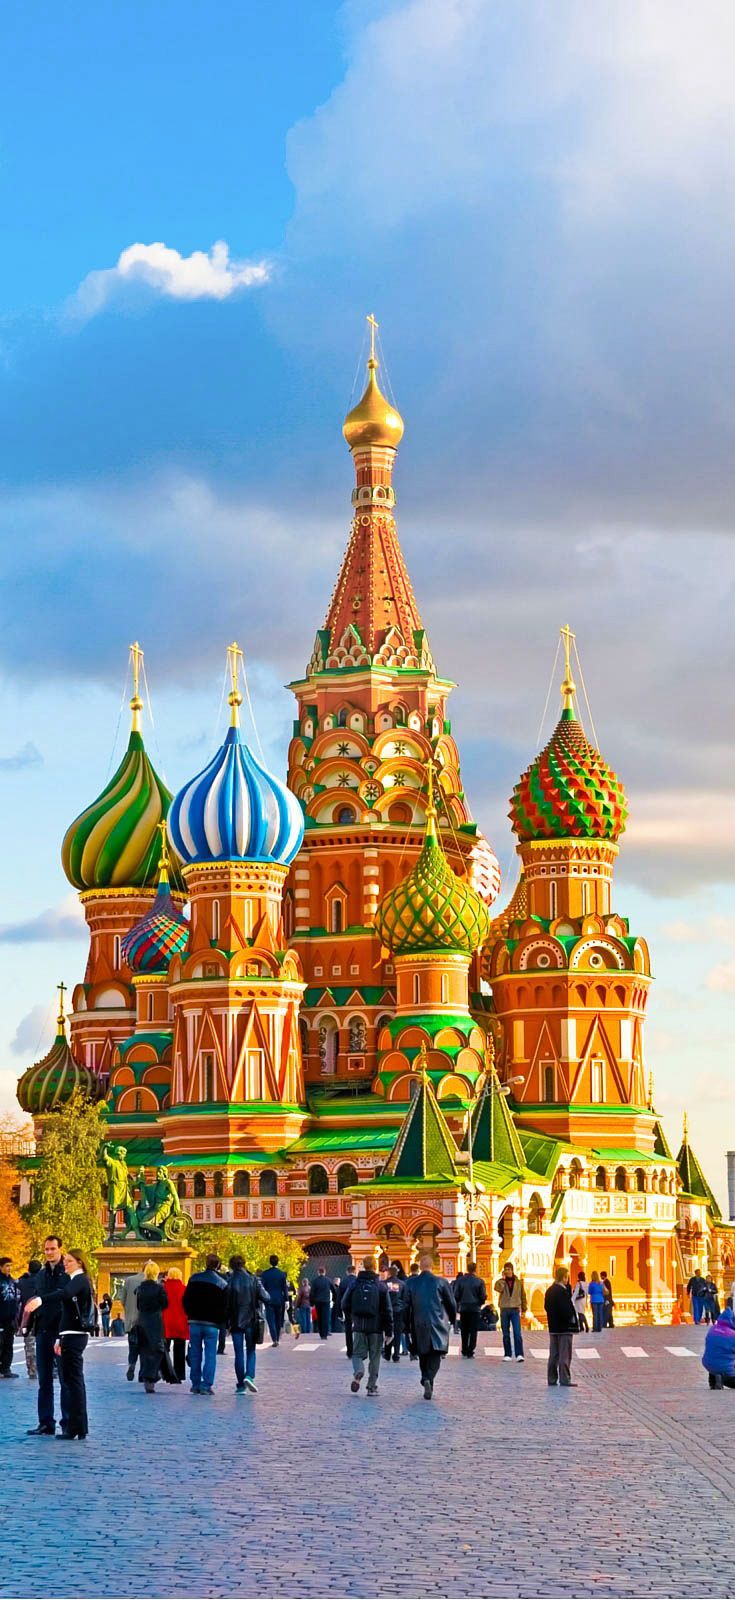 St. Basil's Cathedral in Moscow, Russia! Such an amazing place! Legend has it that Tsar Ivan IV blinded the architect after completion of this masterpiece, so the architect could never create something so beautiful again. Ouch, way to say thanks for the hard work. Click through to continue reading!